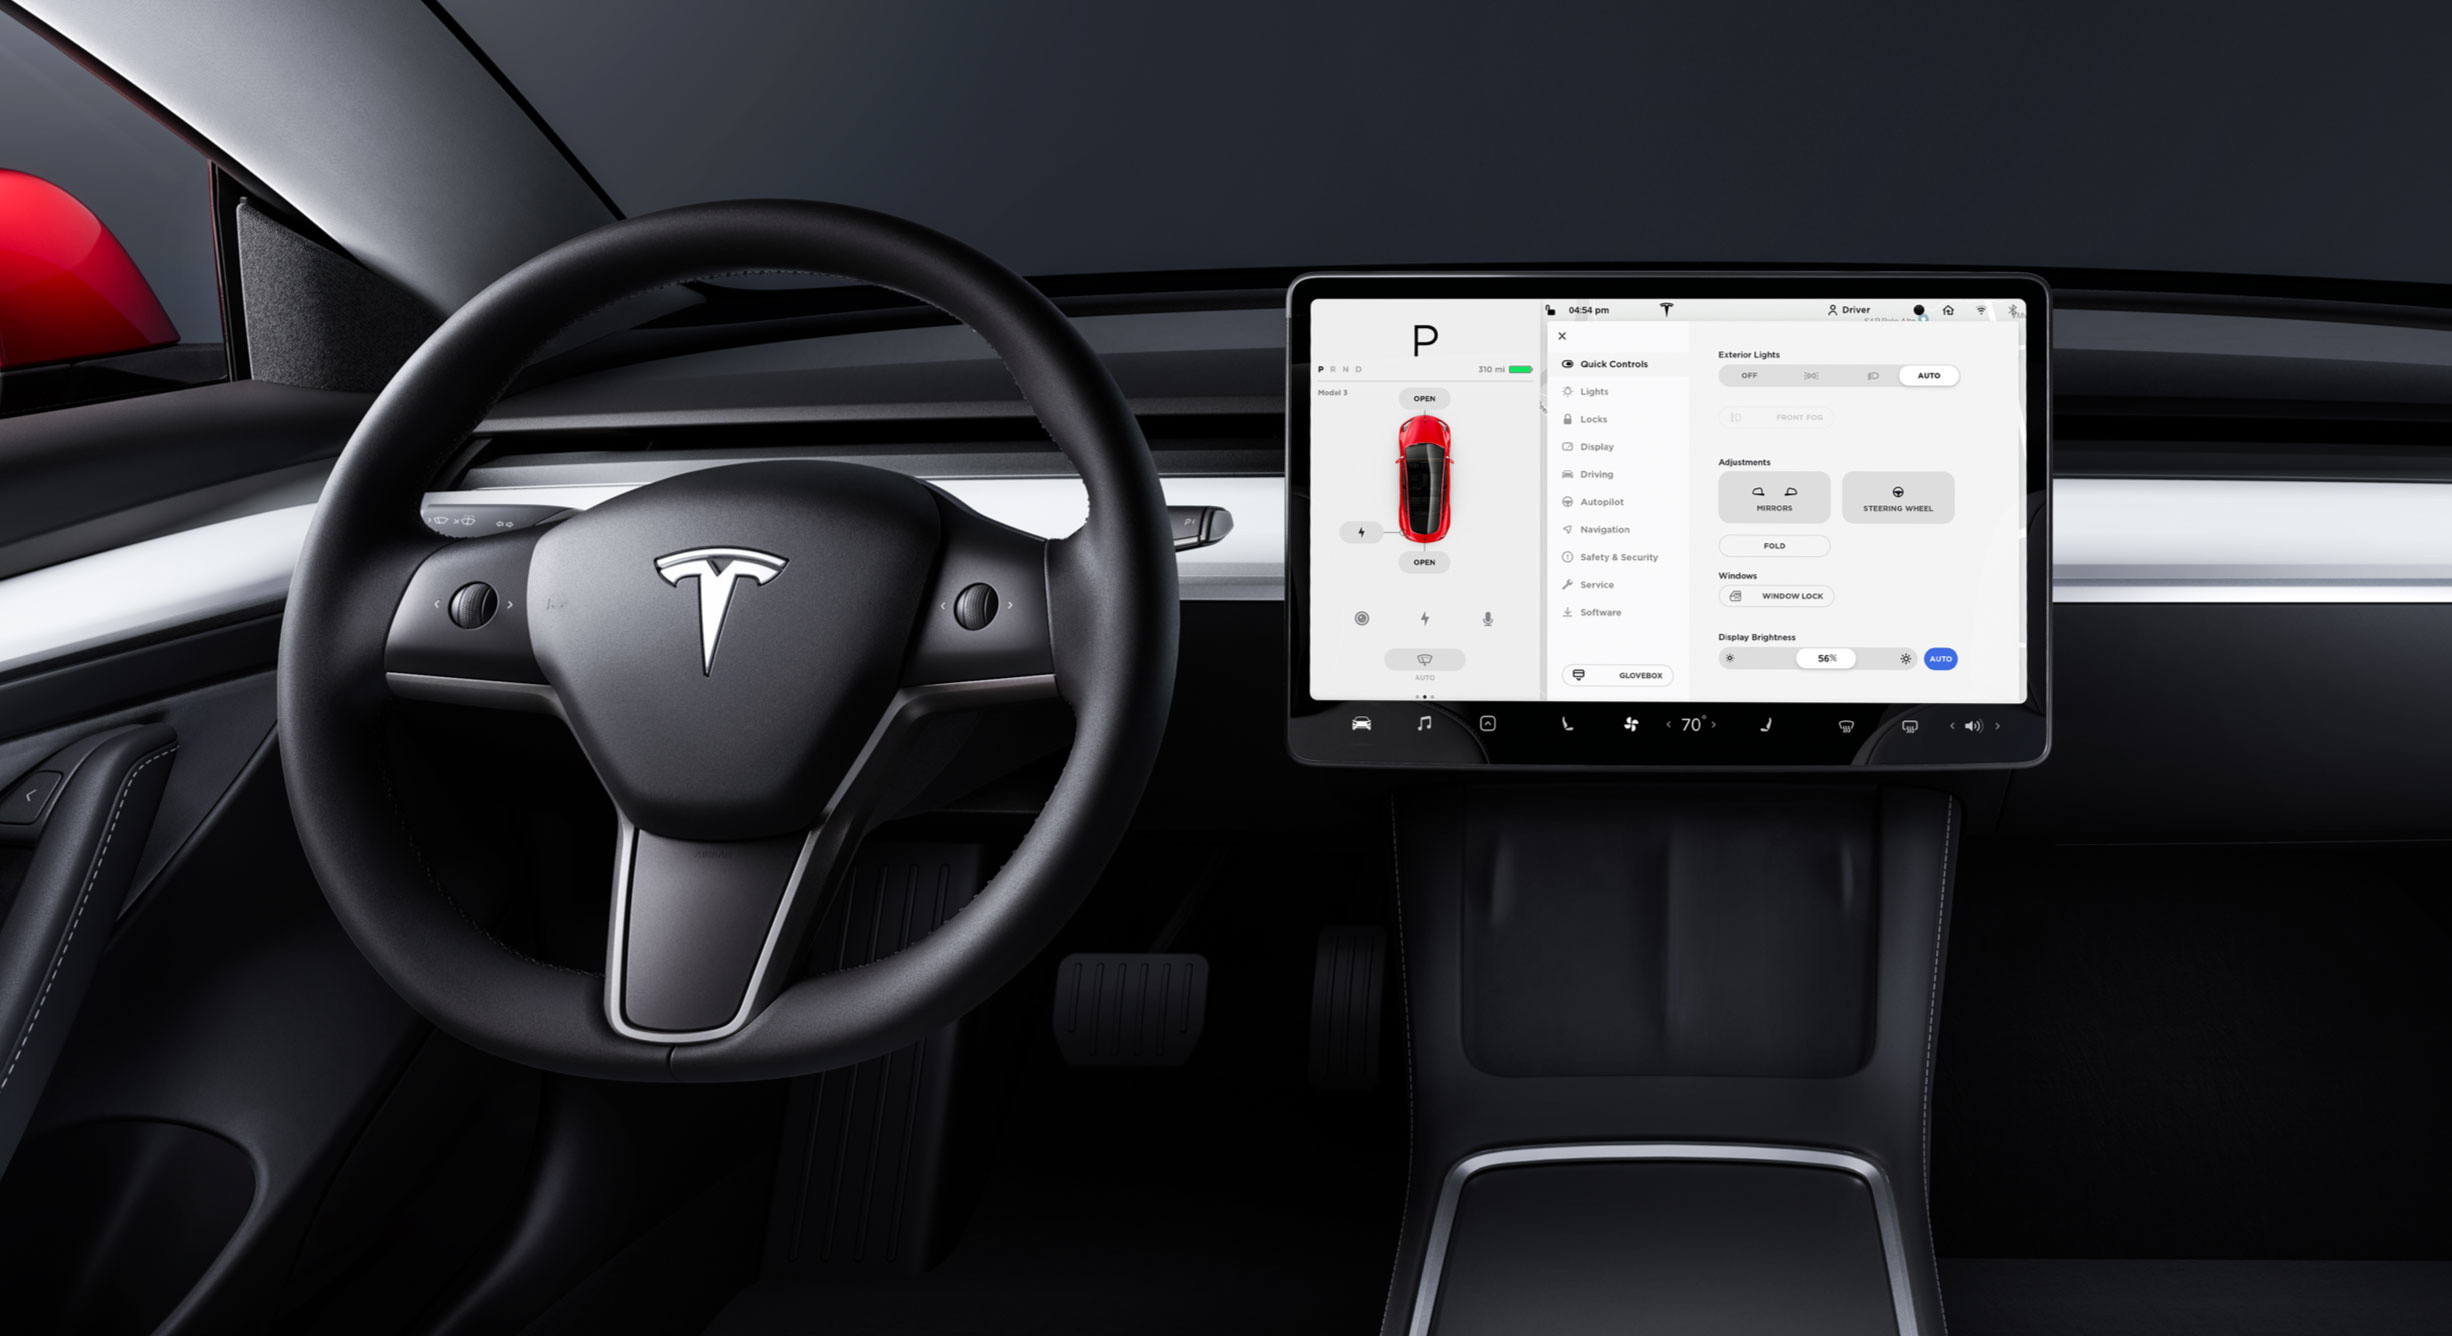 Controls screen on Model 3 touchscreen